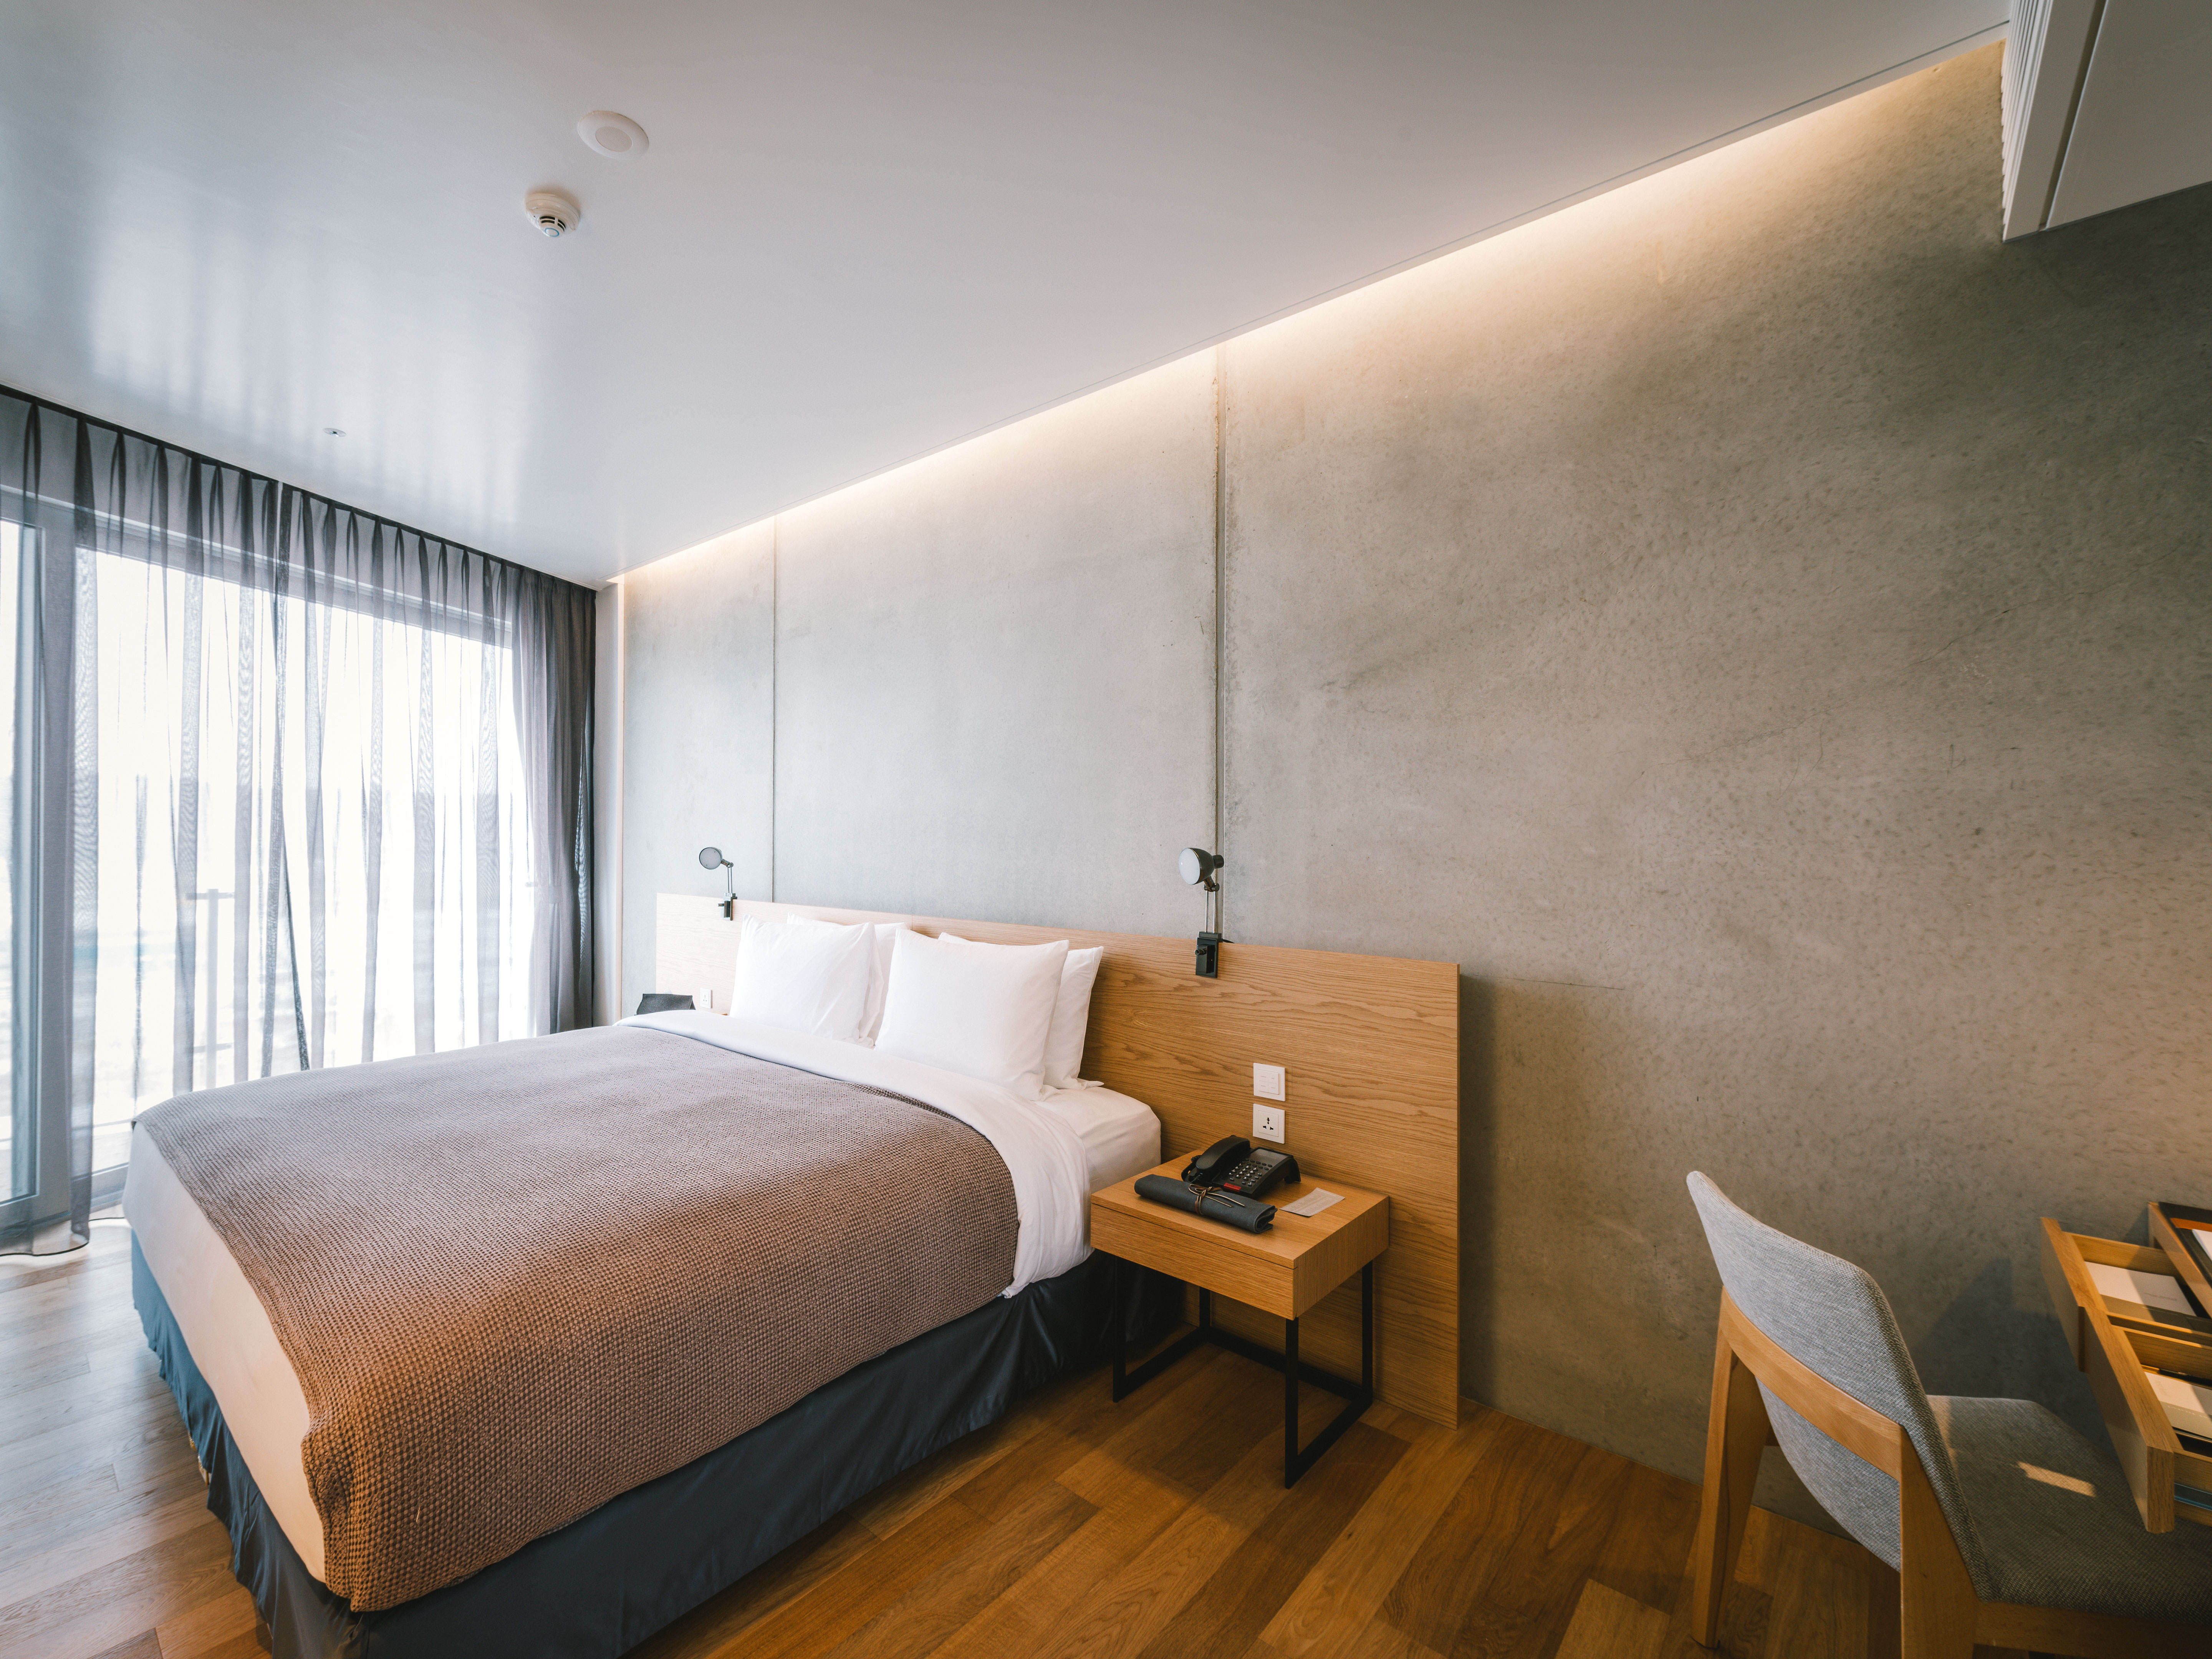 Rooms suites at nest hotel in incheon south korea for Design hotel korea